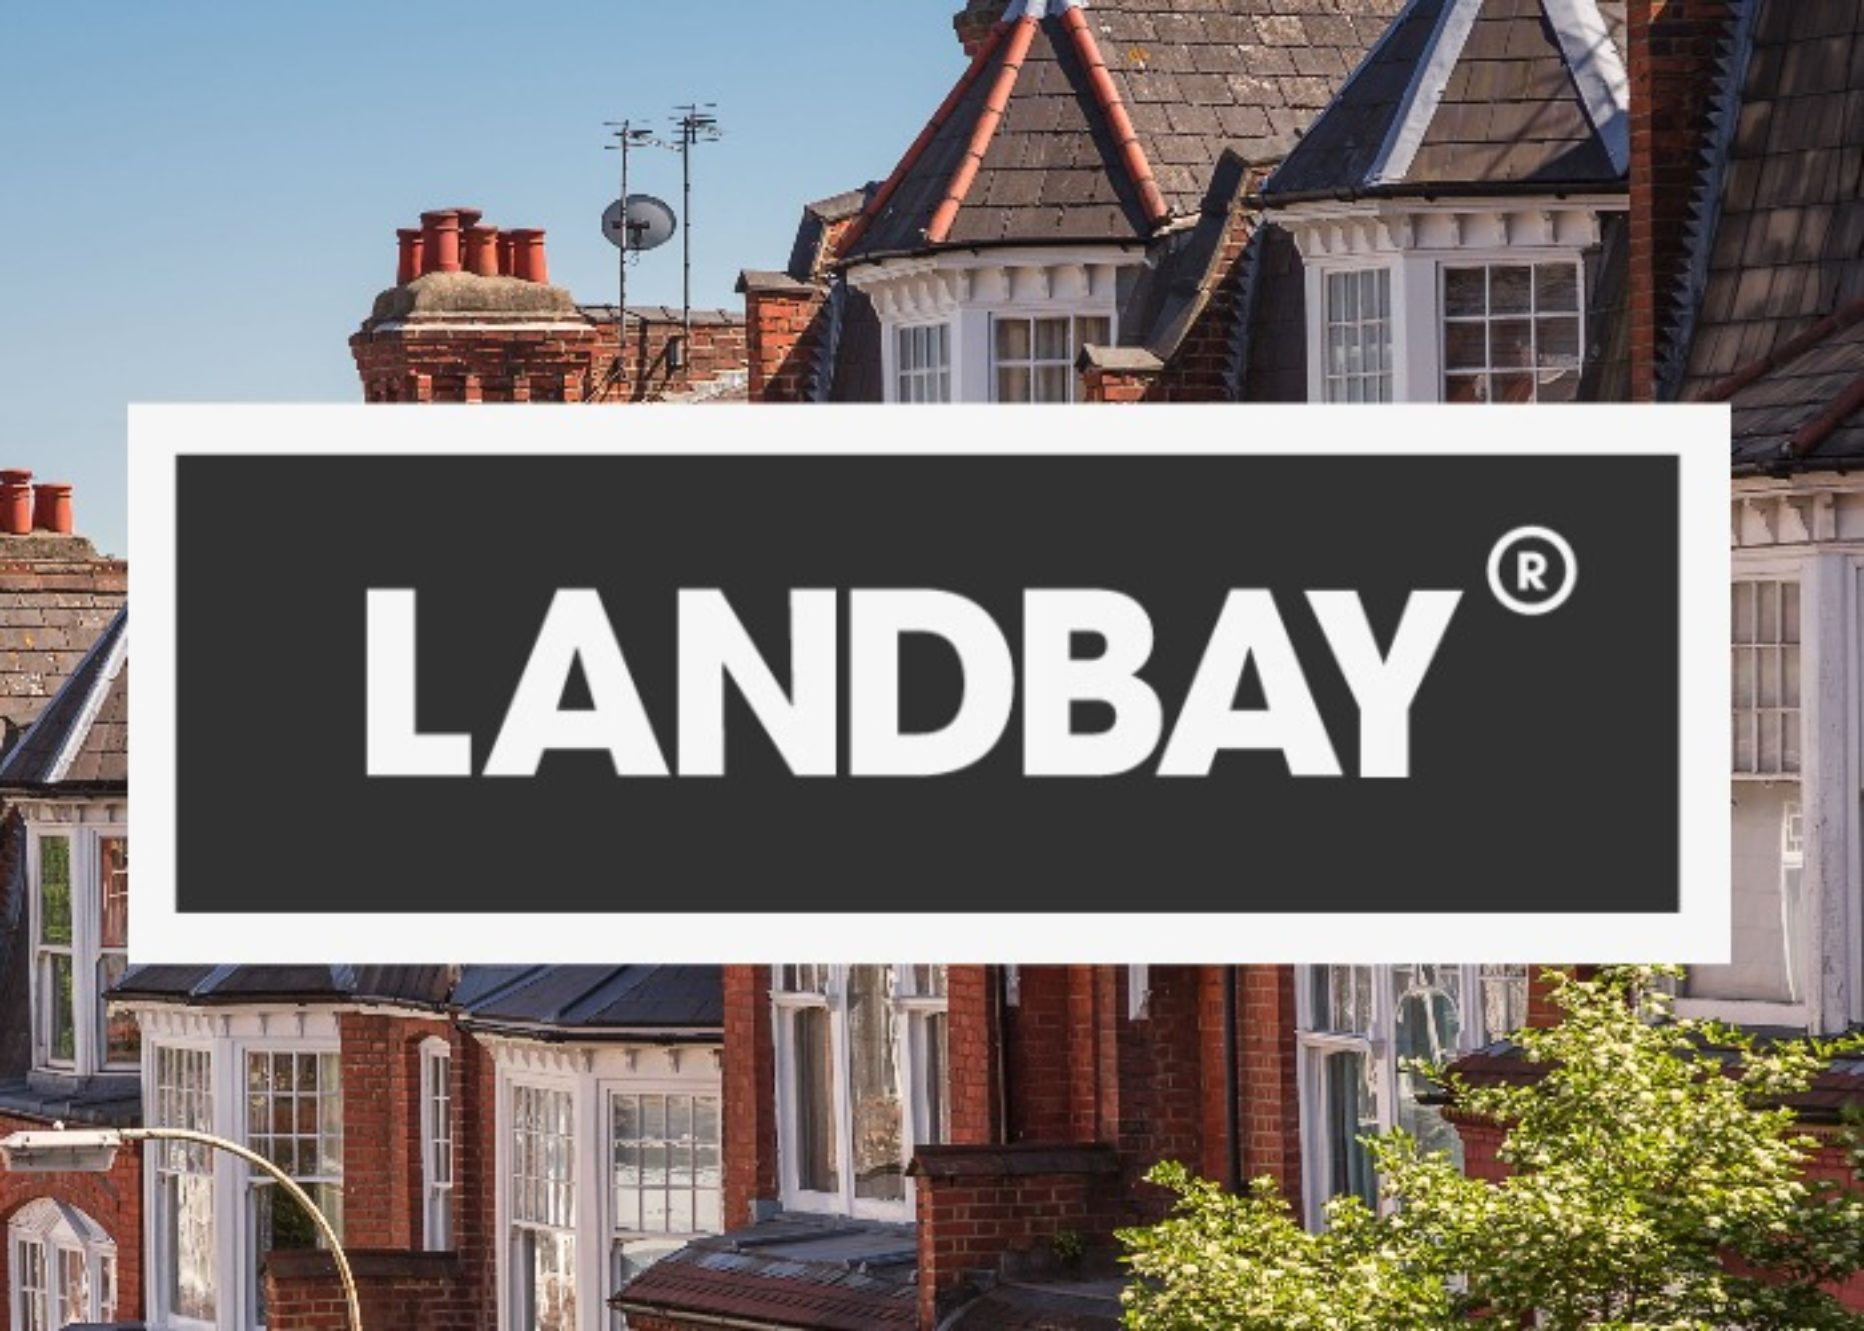 Landbay Account Information